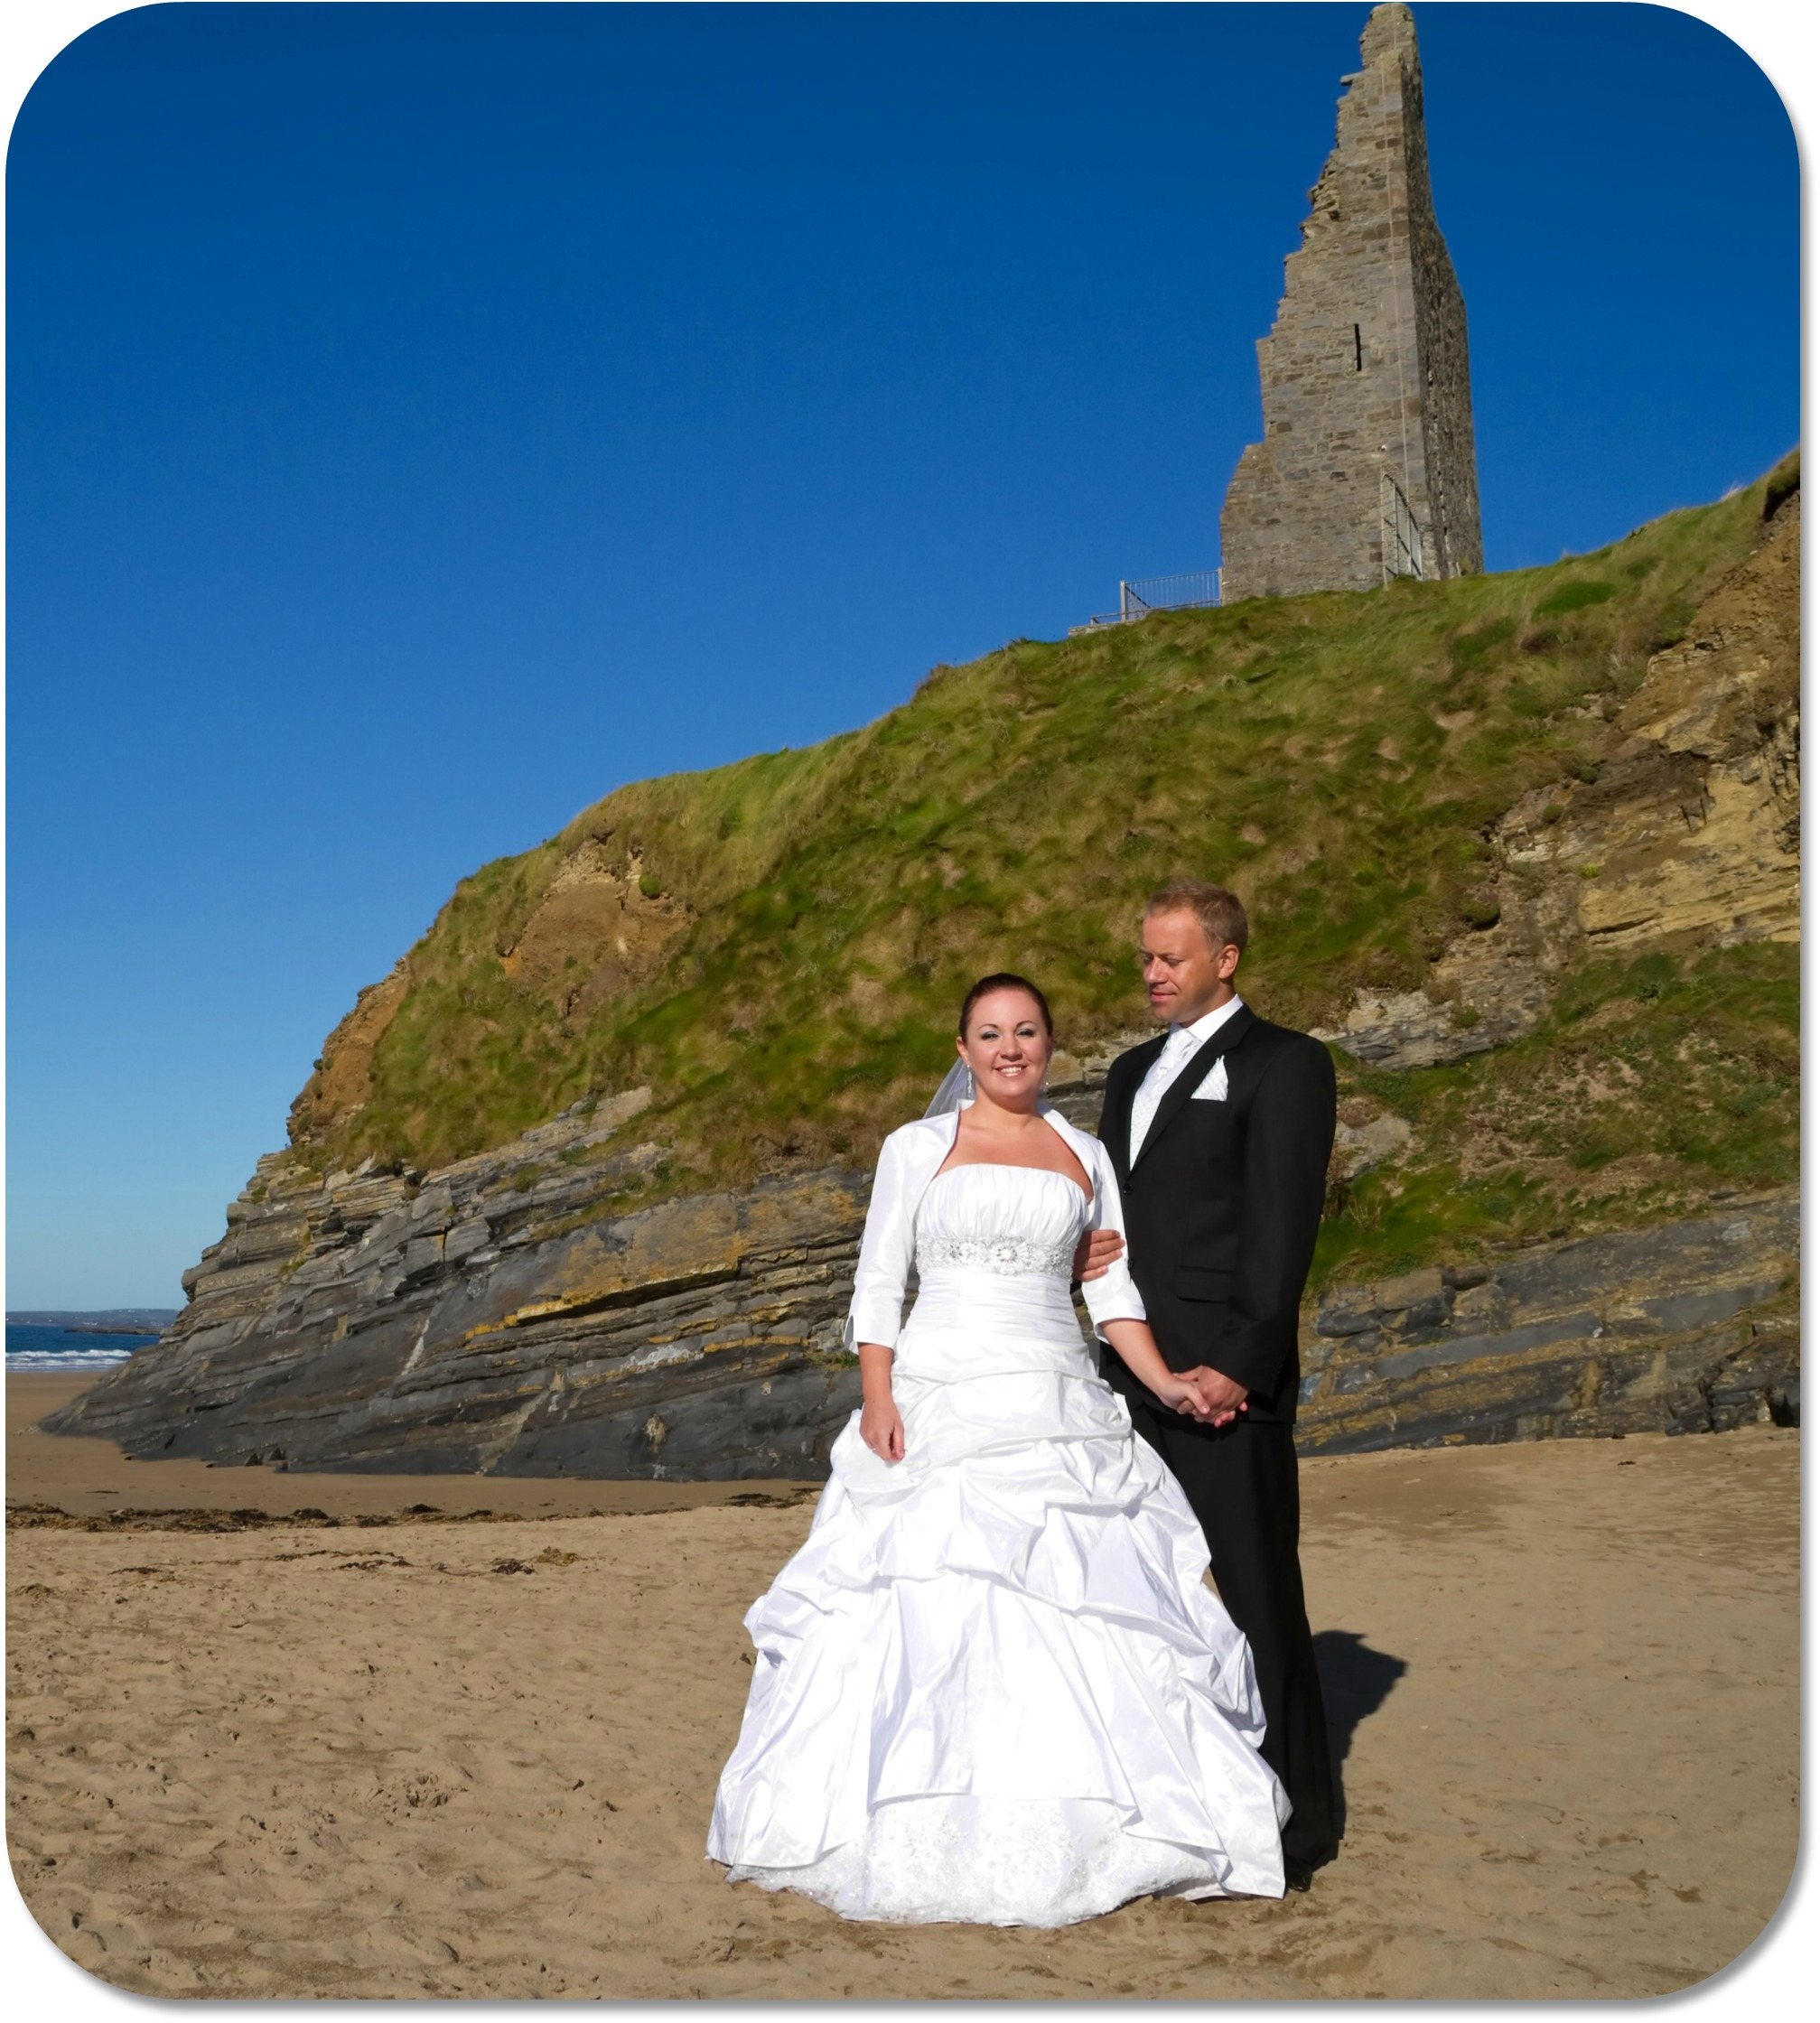 Irish Wedding Songs - Couple on the Beach